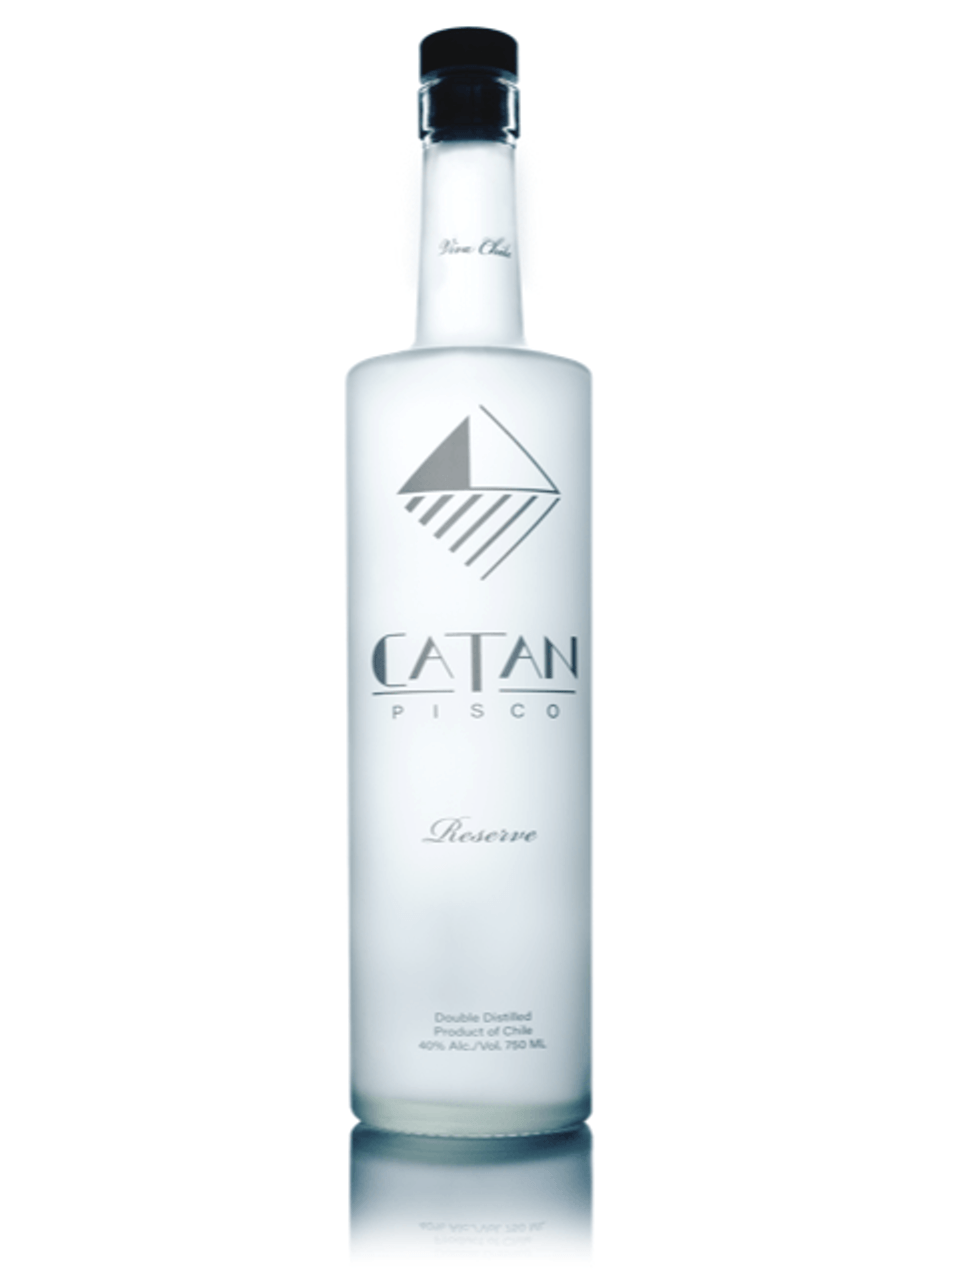 Delivering the spirit of the south to its neighbors of the north through Catan Pisco. Whether your Pisco is served on the rocks, smoked & neat, or in a cocktail, let Catan take you to the luxurious flavors of Chile through a glass.